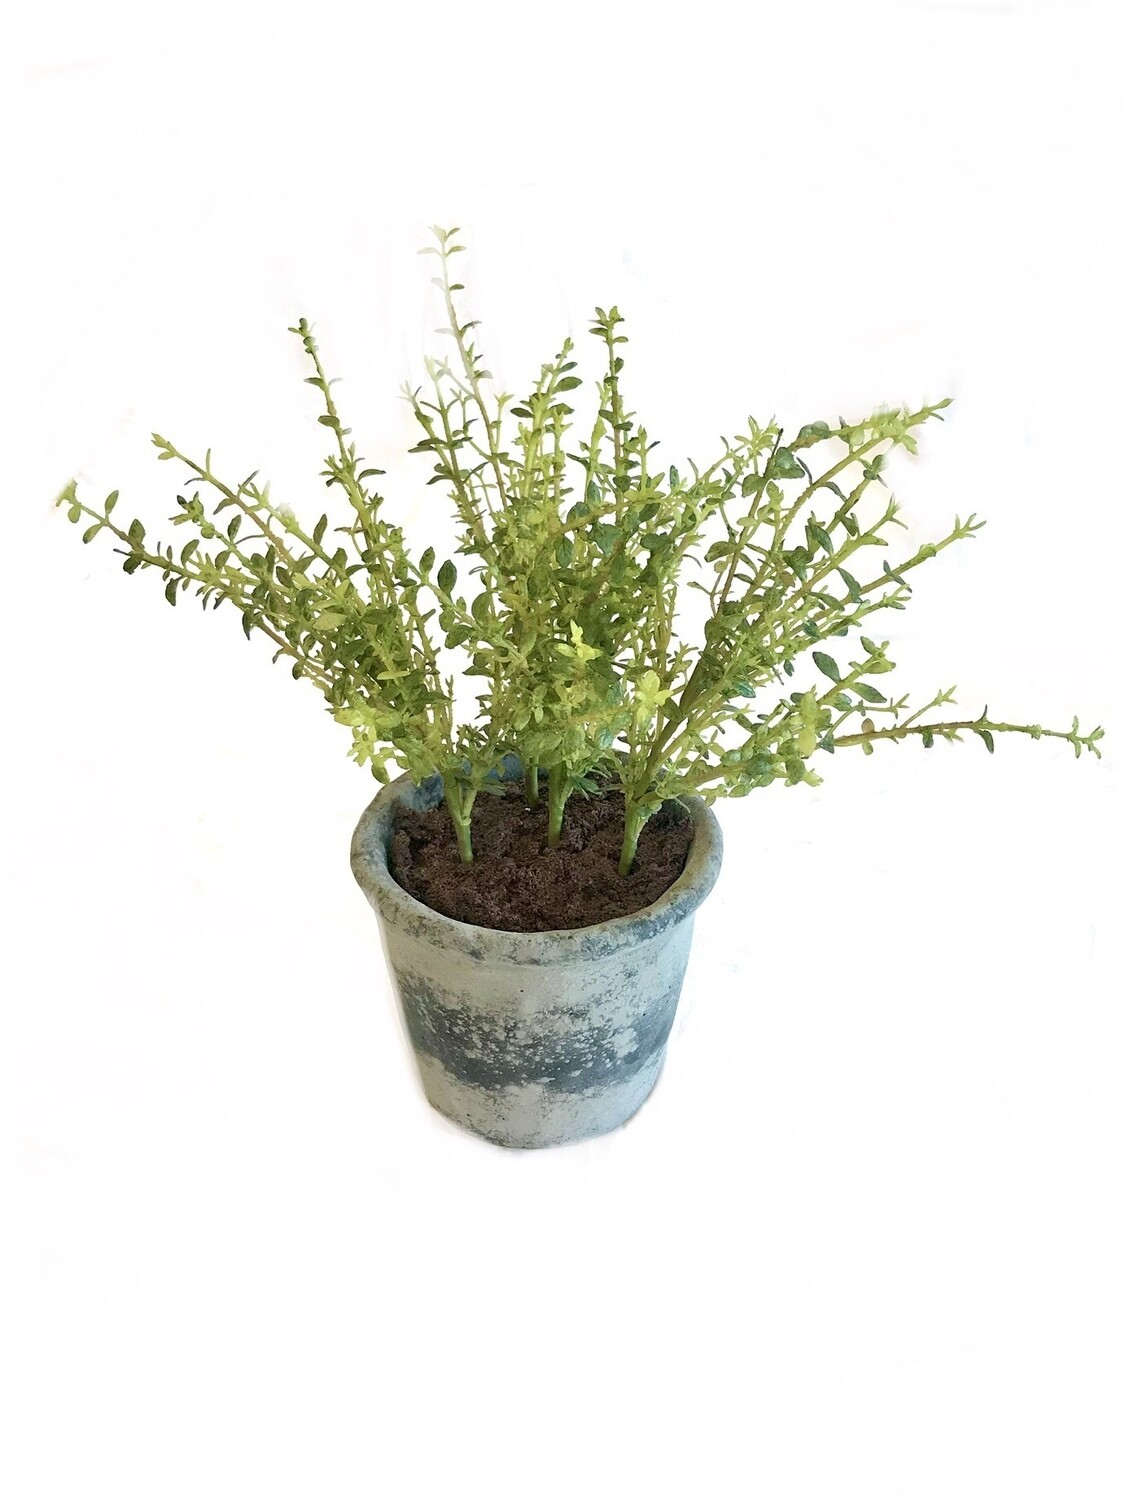 Potted herb large Thyme